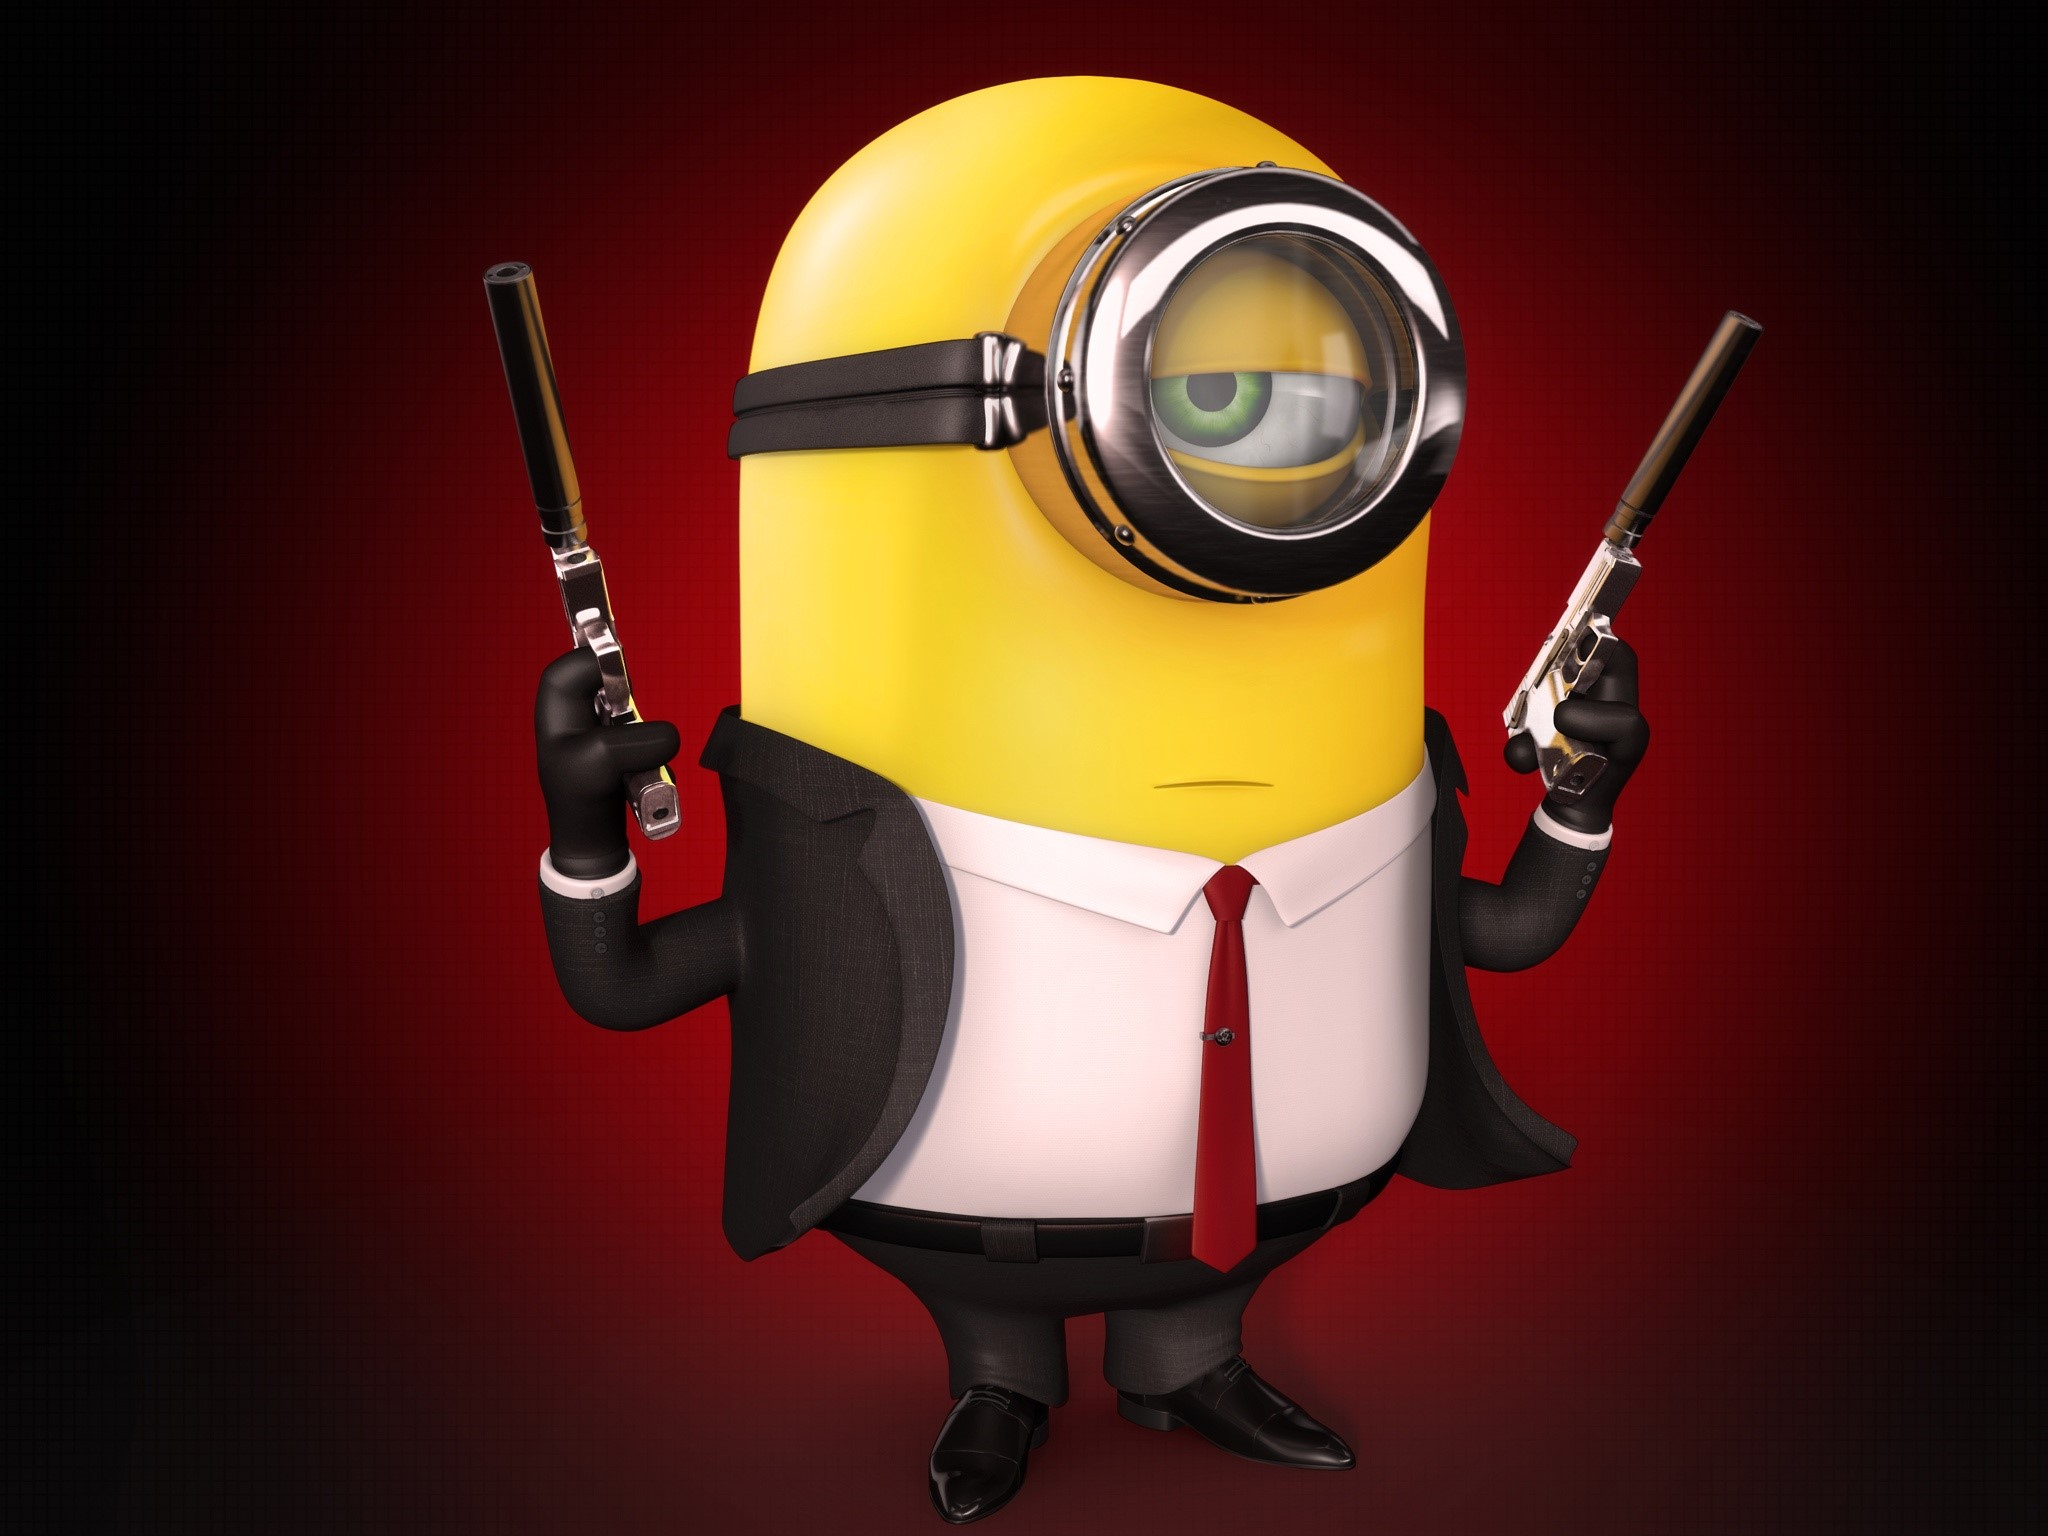 Wallpaper Minion Hitman Images